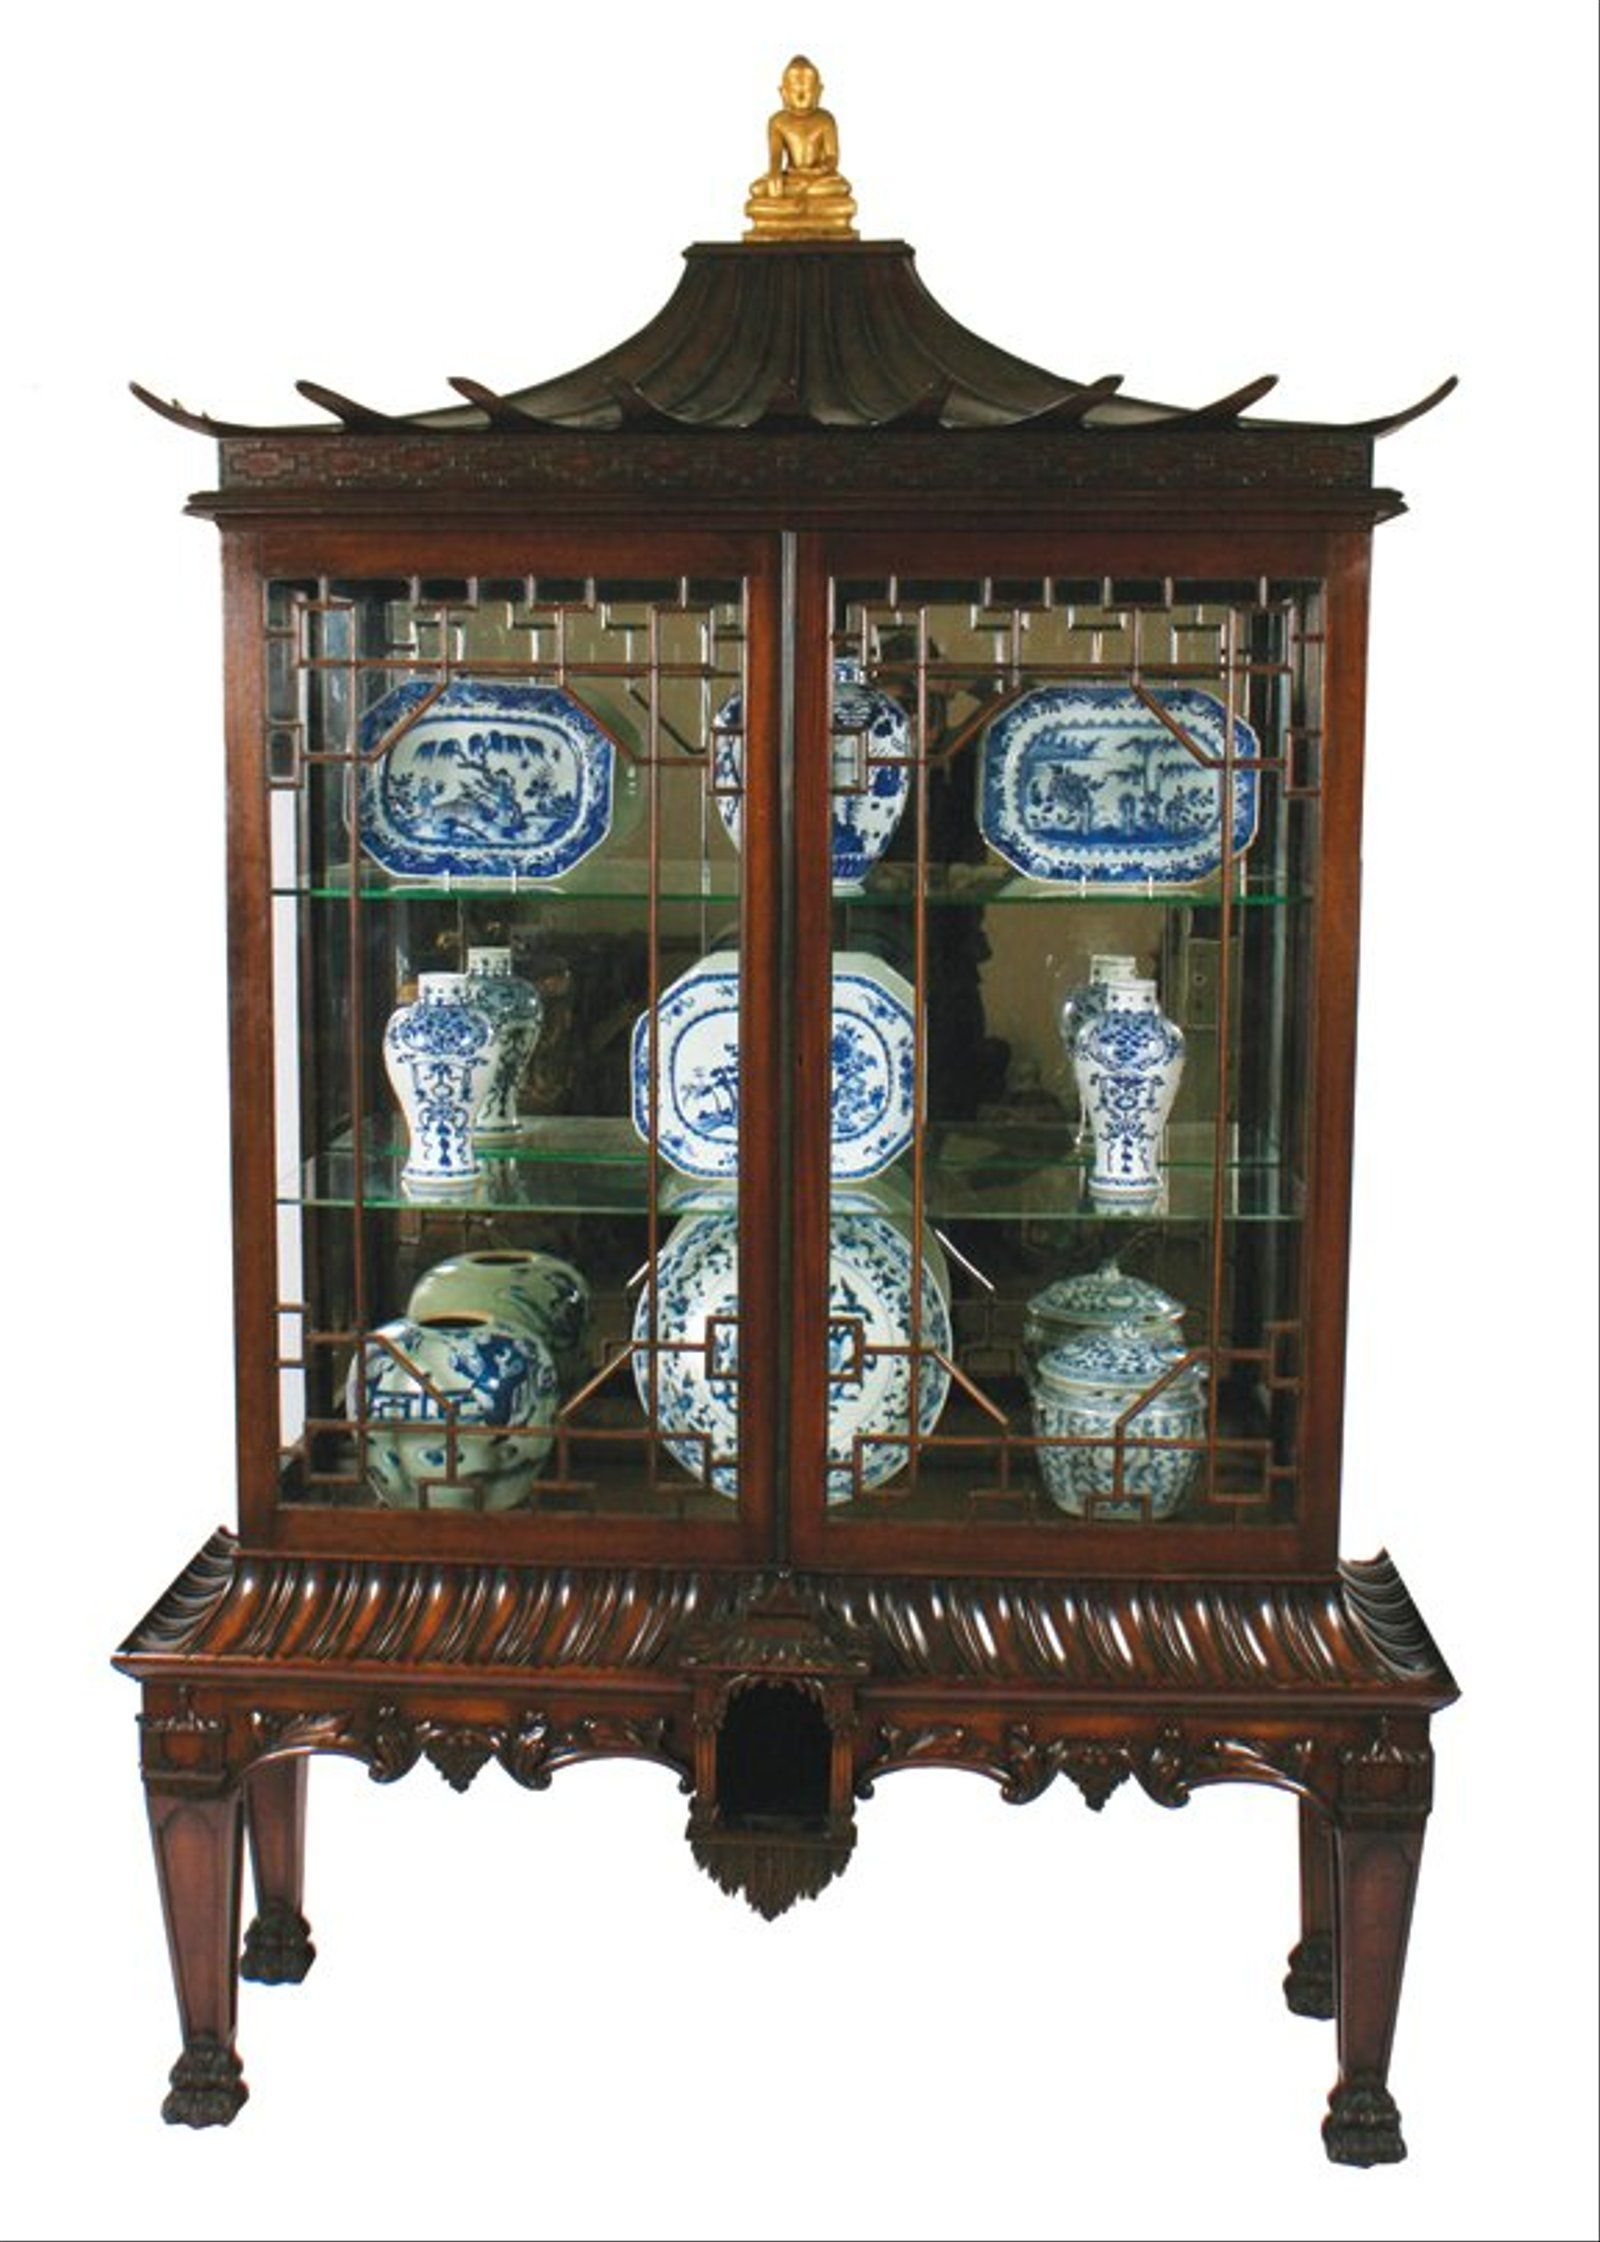 Important Edwardian period Chinese Chippendale display #edwardianperiod Important Edwardian period Chinese Chippendale display #edwardianperiod